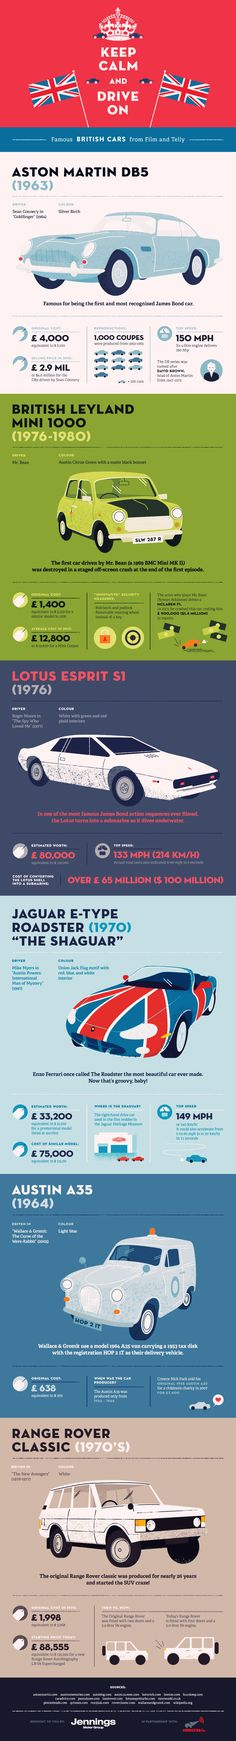 Famous British cars form film and Telly #infographic